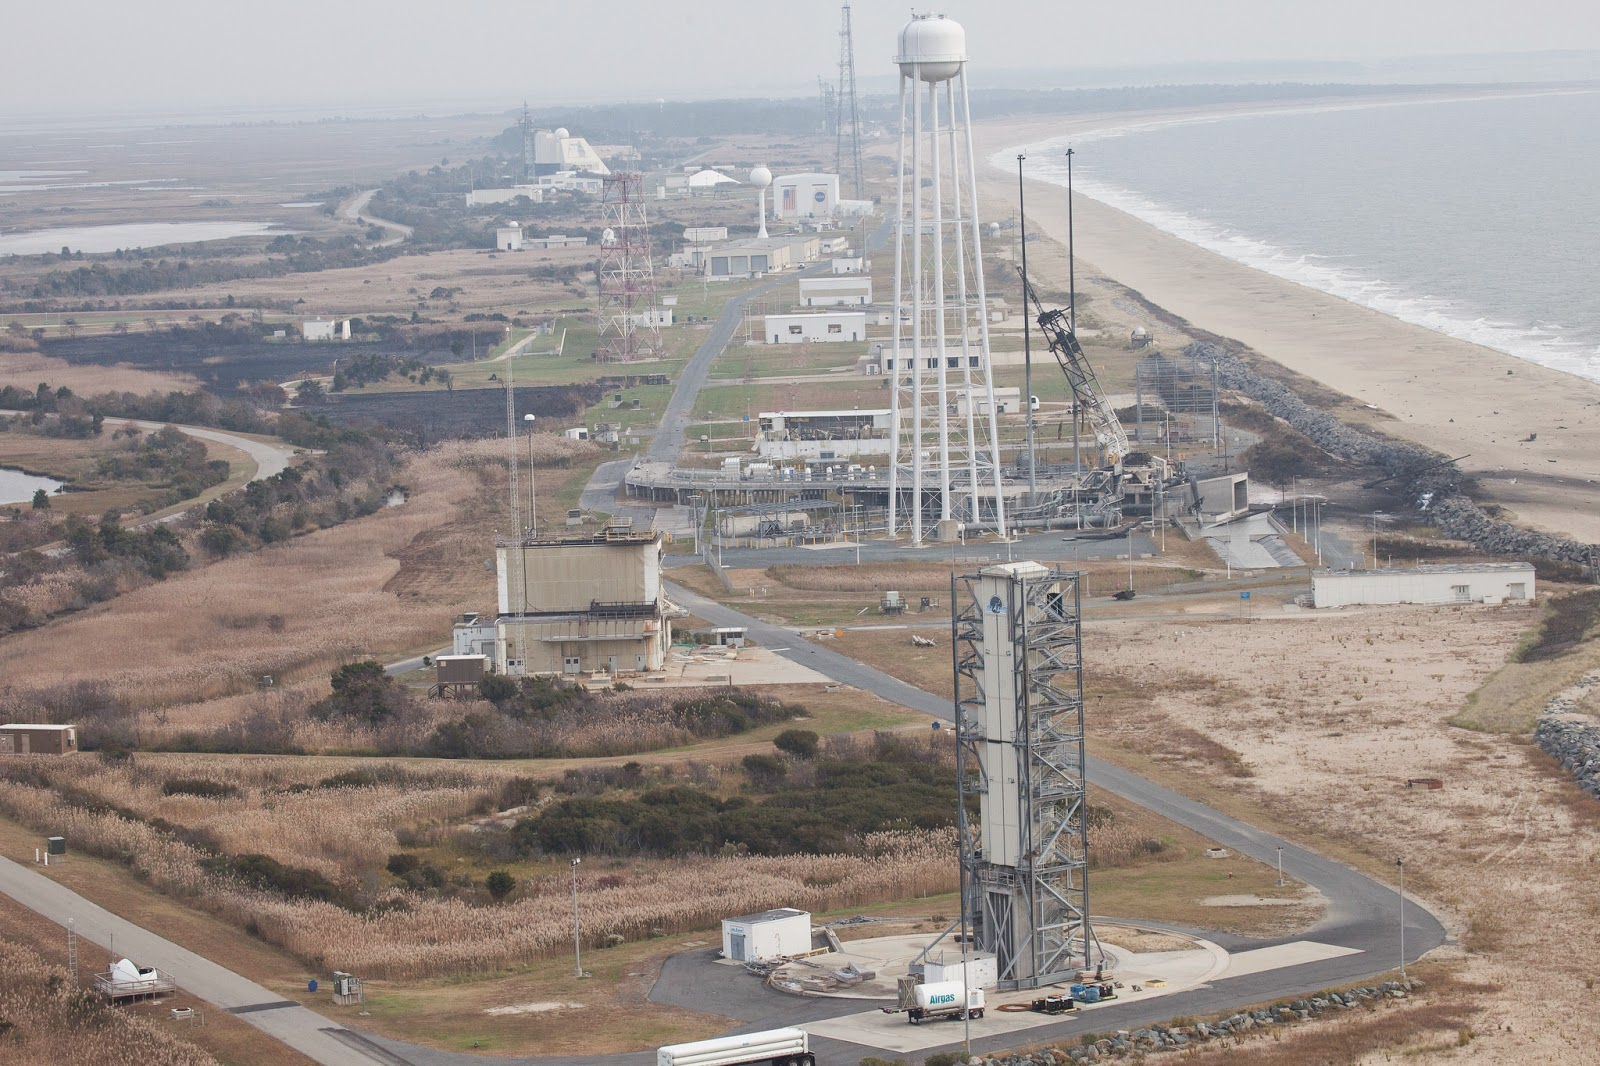 An aerial view of the Wallops Island launch facilities taken by the Wallops Incident Response Team Wednesday, Oct. 29, 2014 following the failed launch attempt of Orbital Science Corp.'s Antares rocket Oct. 28, Wallops Island, VA. Photo Credit: NASA/Terry Zaperach